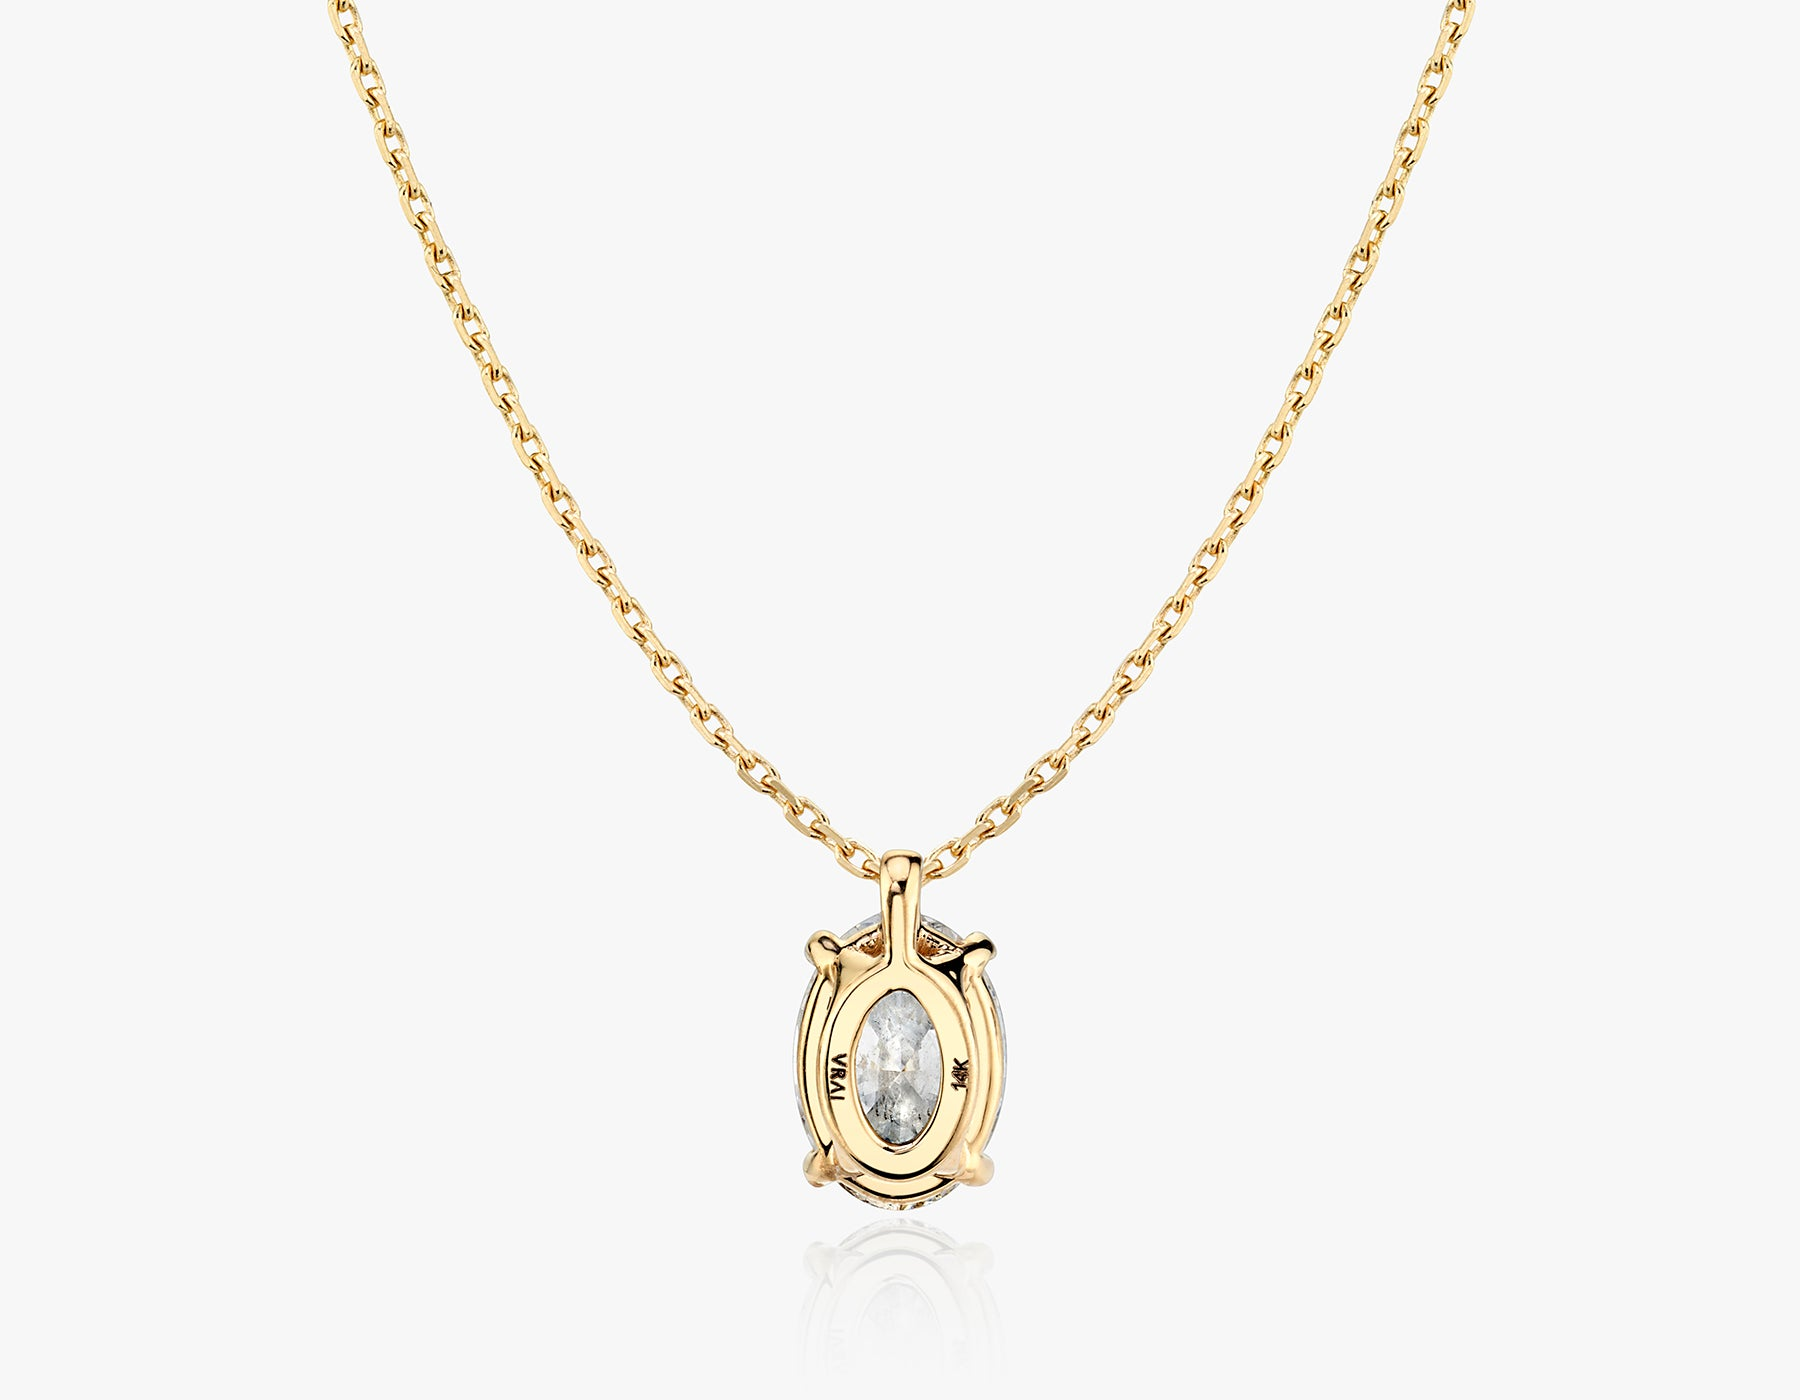 Vrai 1ct Solitaire Oval Created Diamond Pendant Necklace back view, 14K Yellow Gold